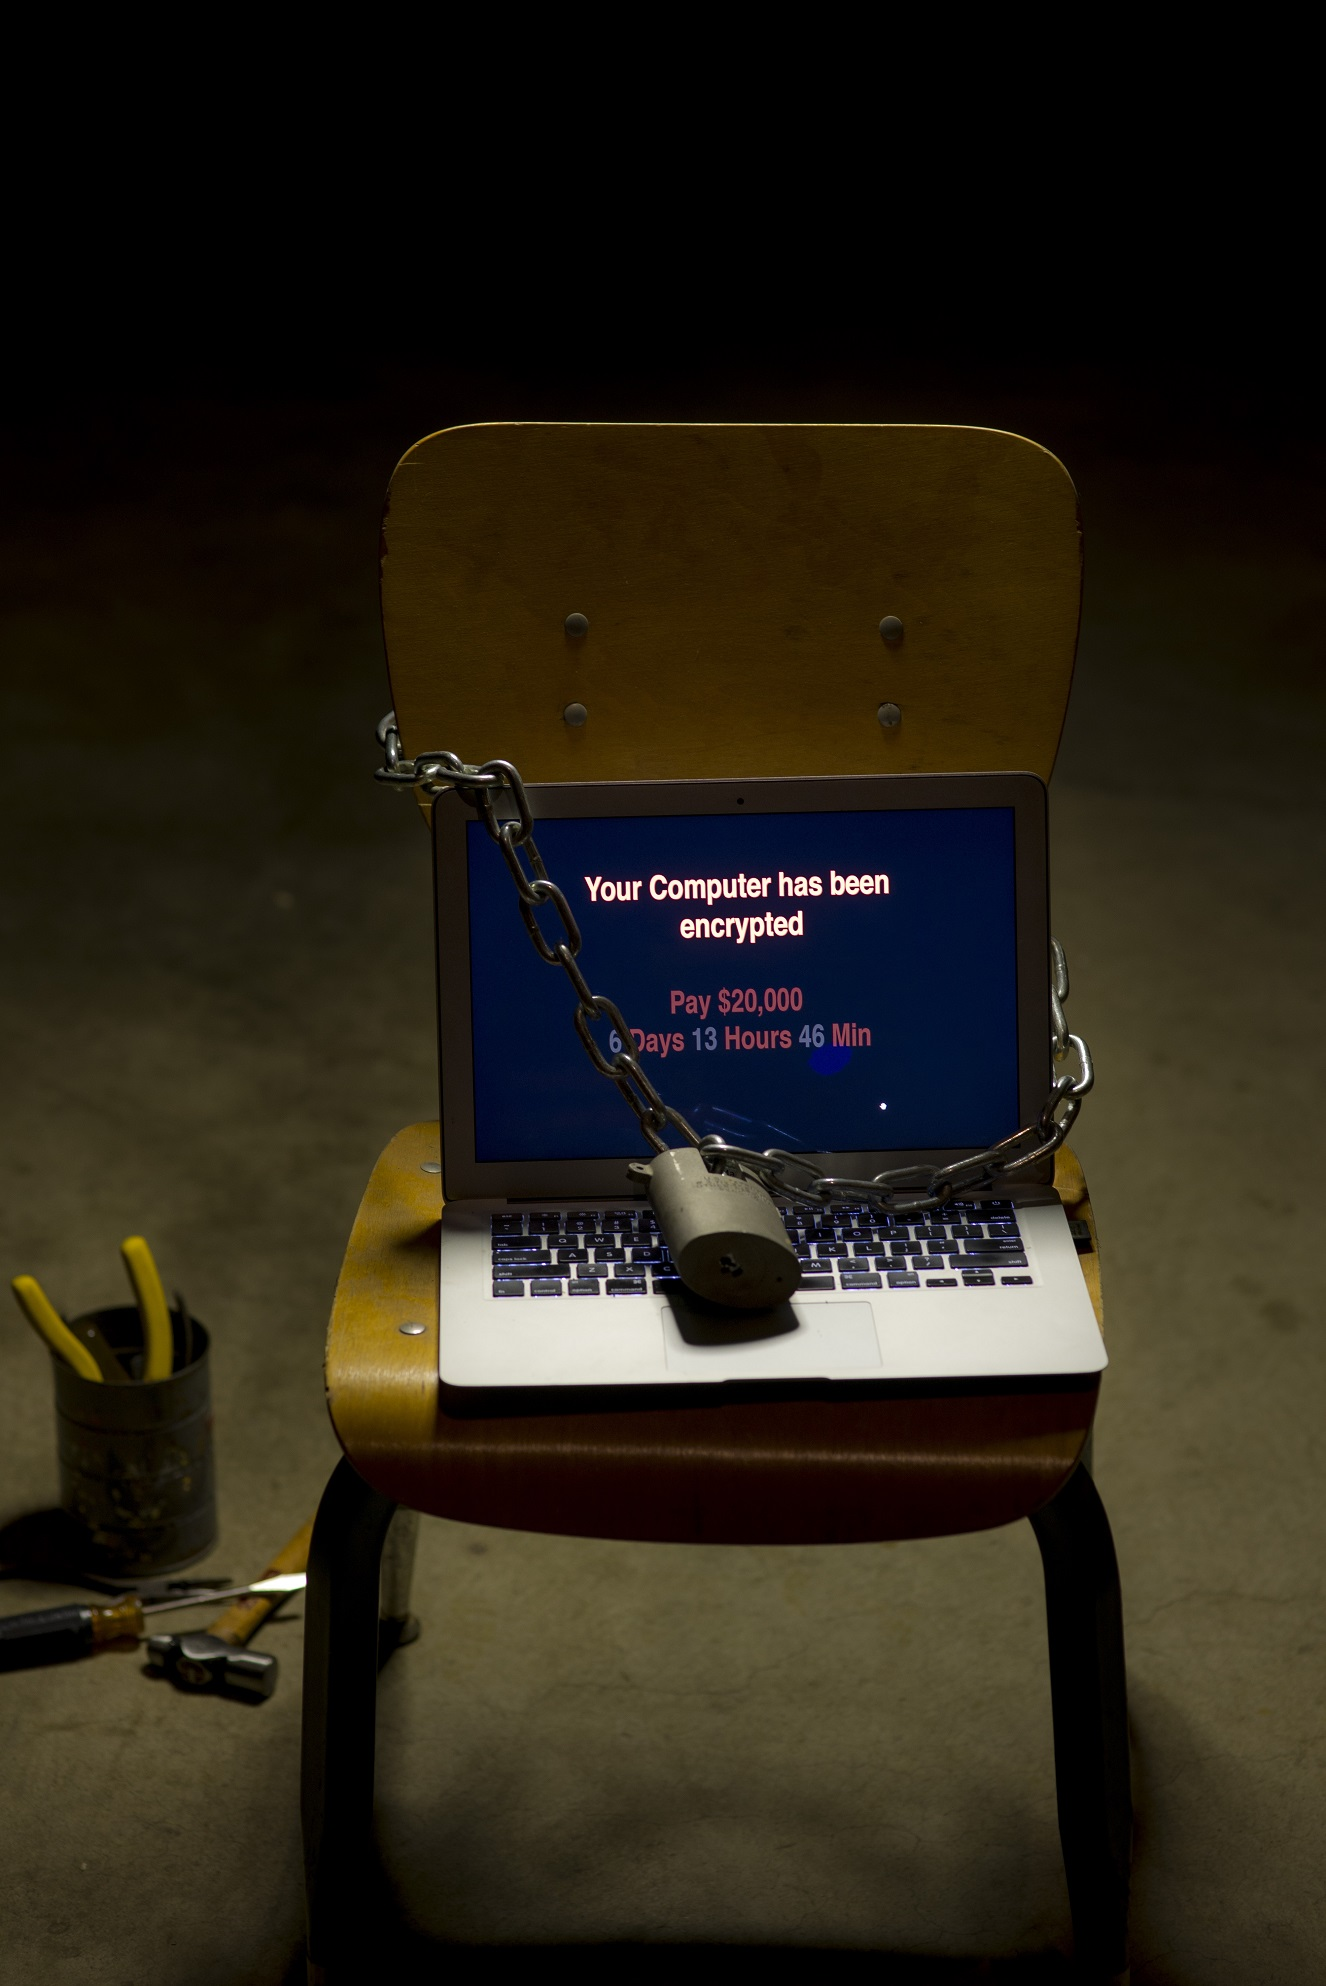 Ransomware an 'equal-opportunity extortion attempt'